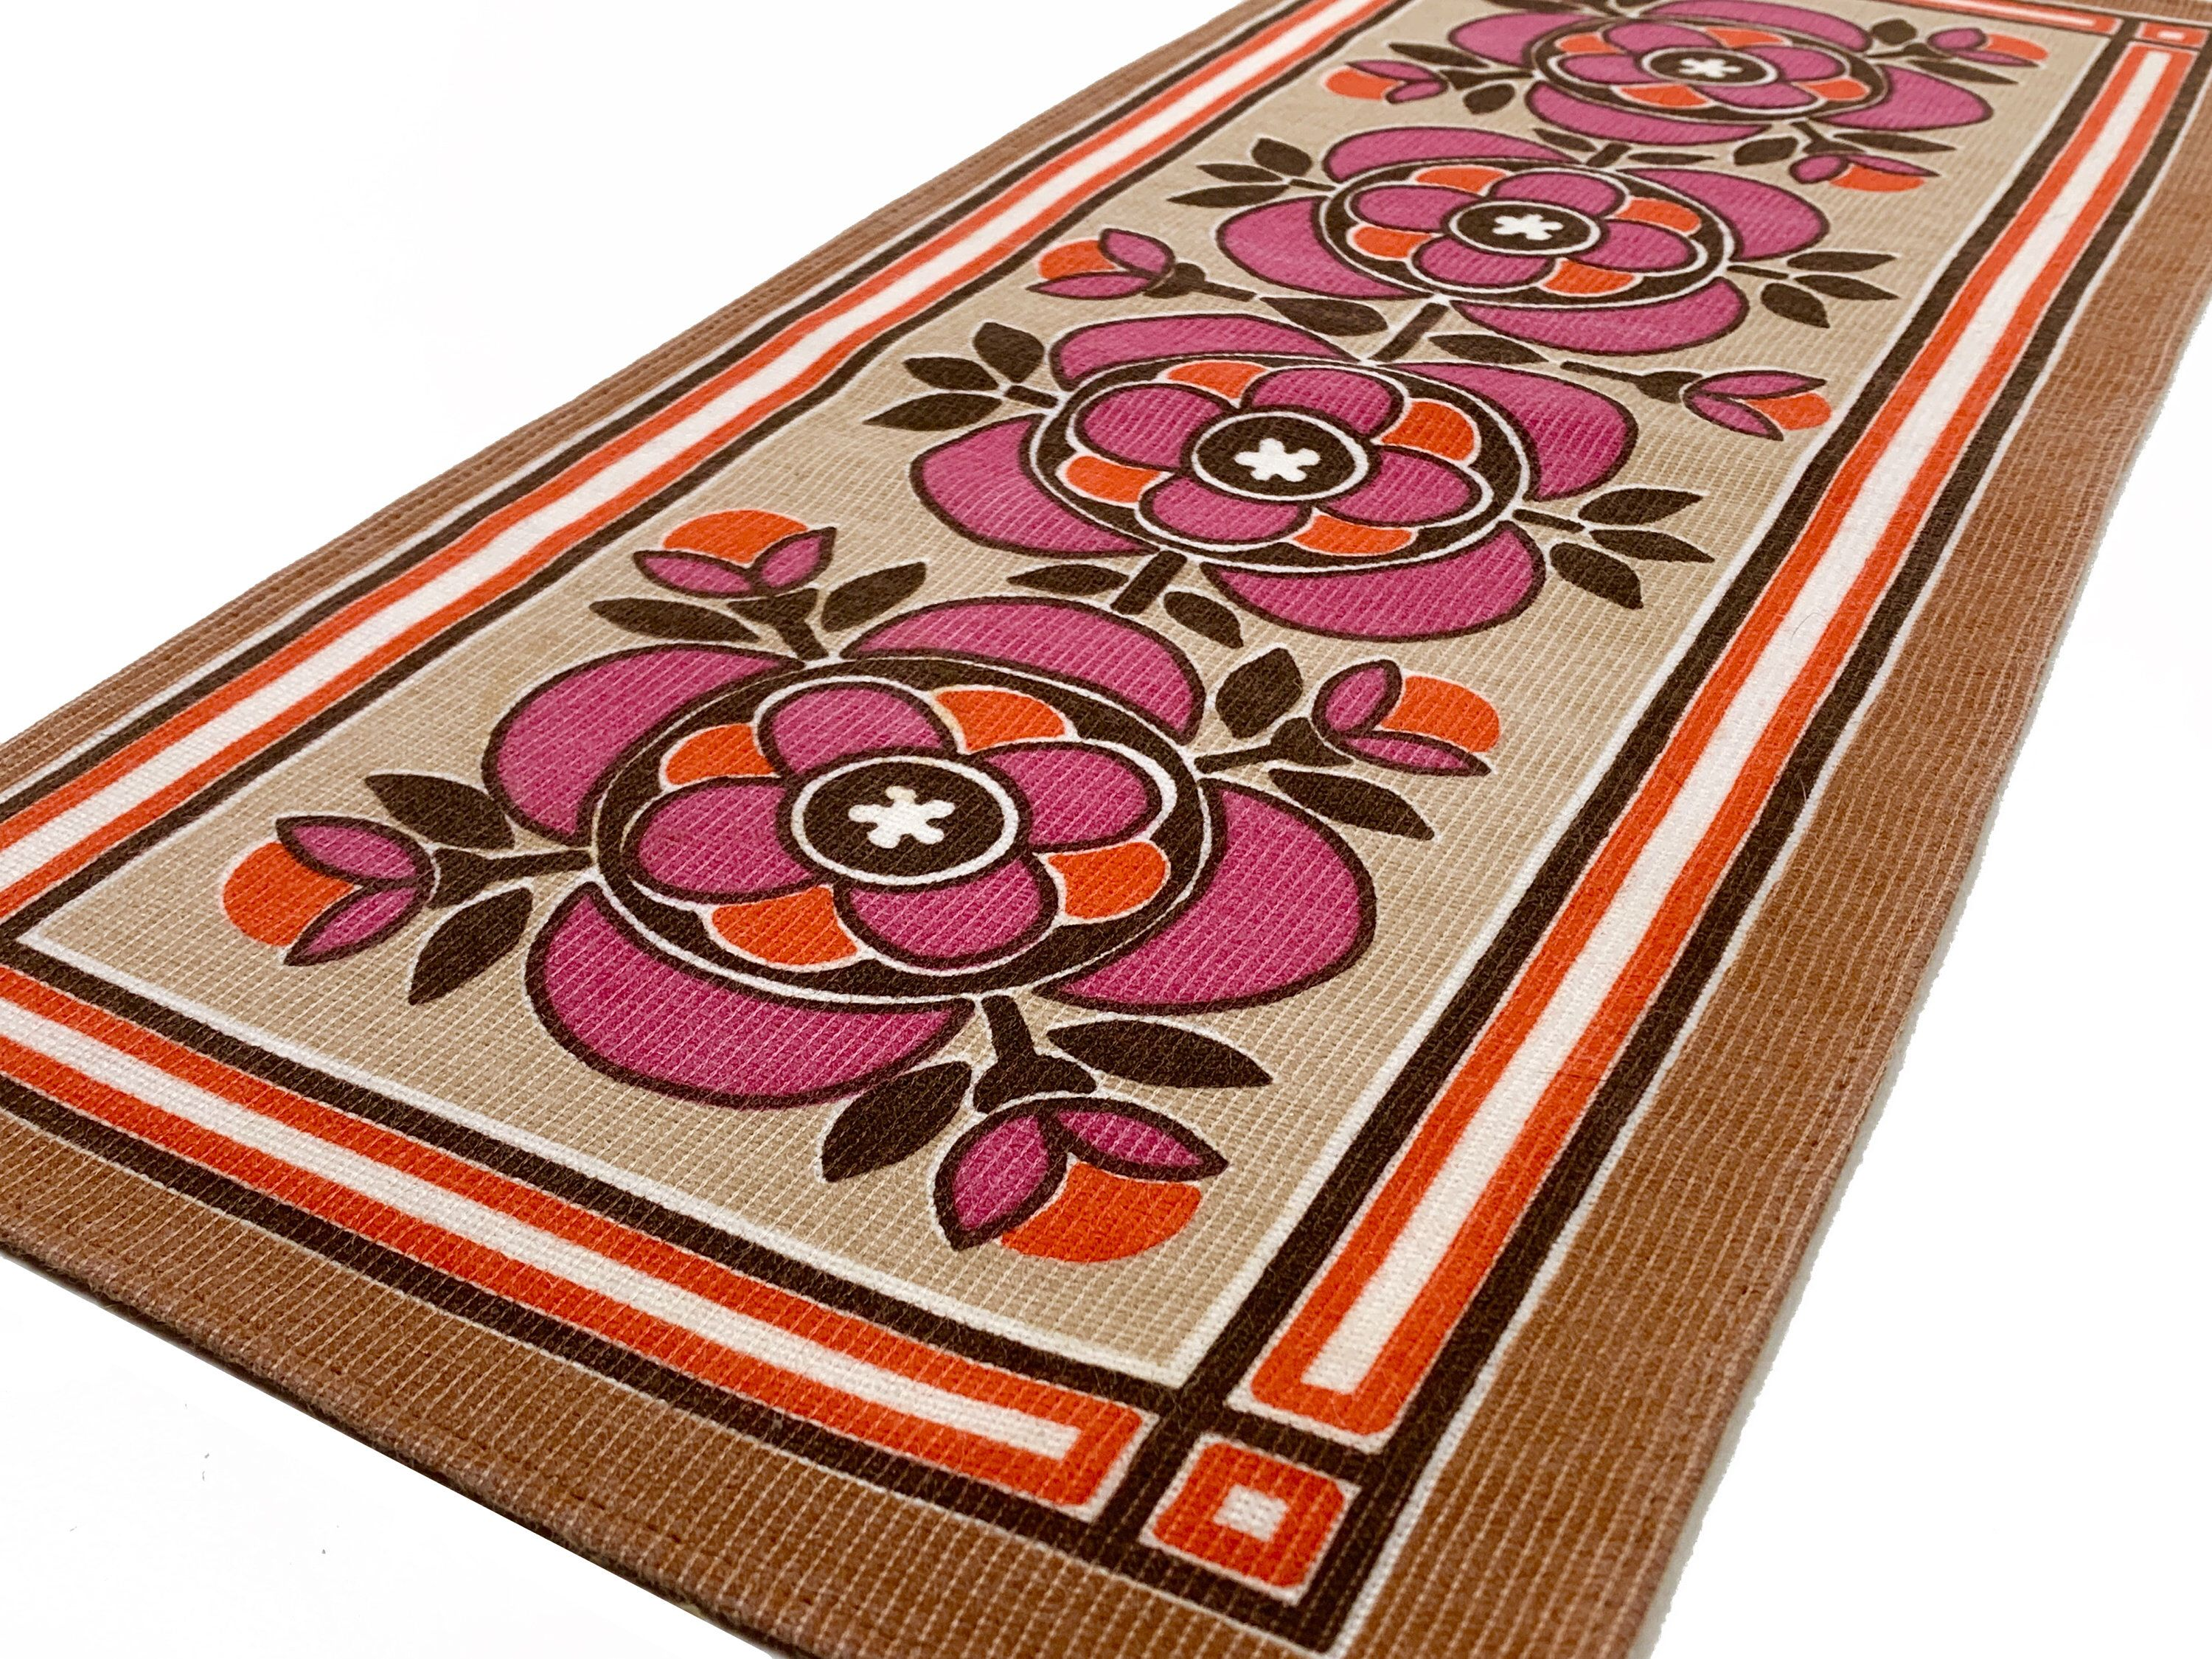 Swedish Vintage Table Runner Made In Sweden 1970s Stylized